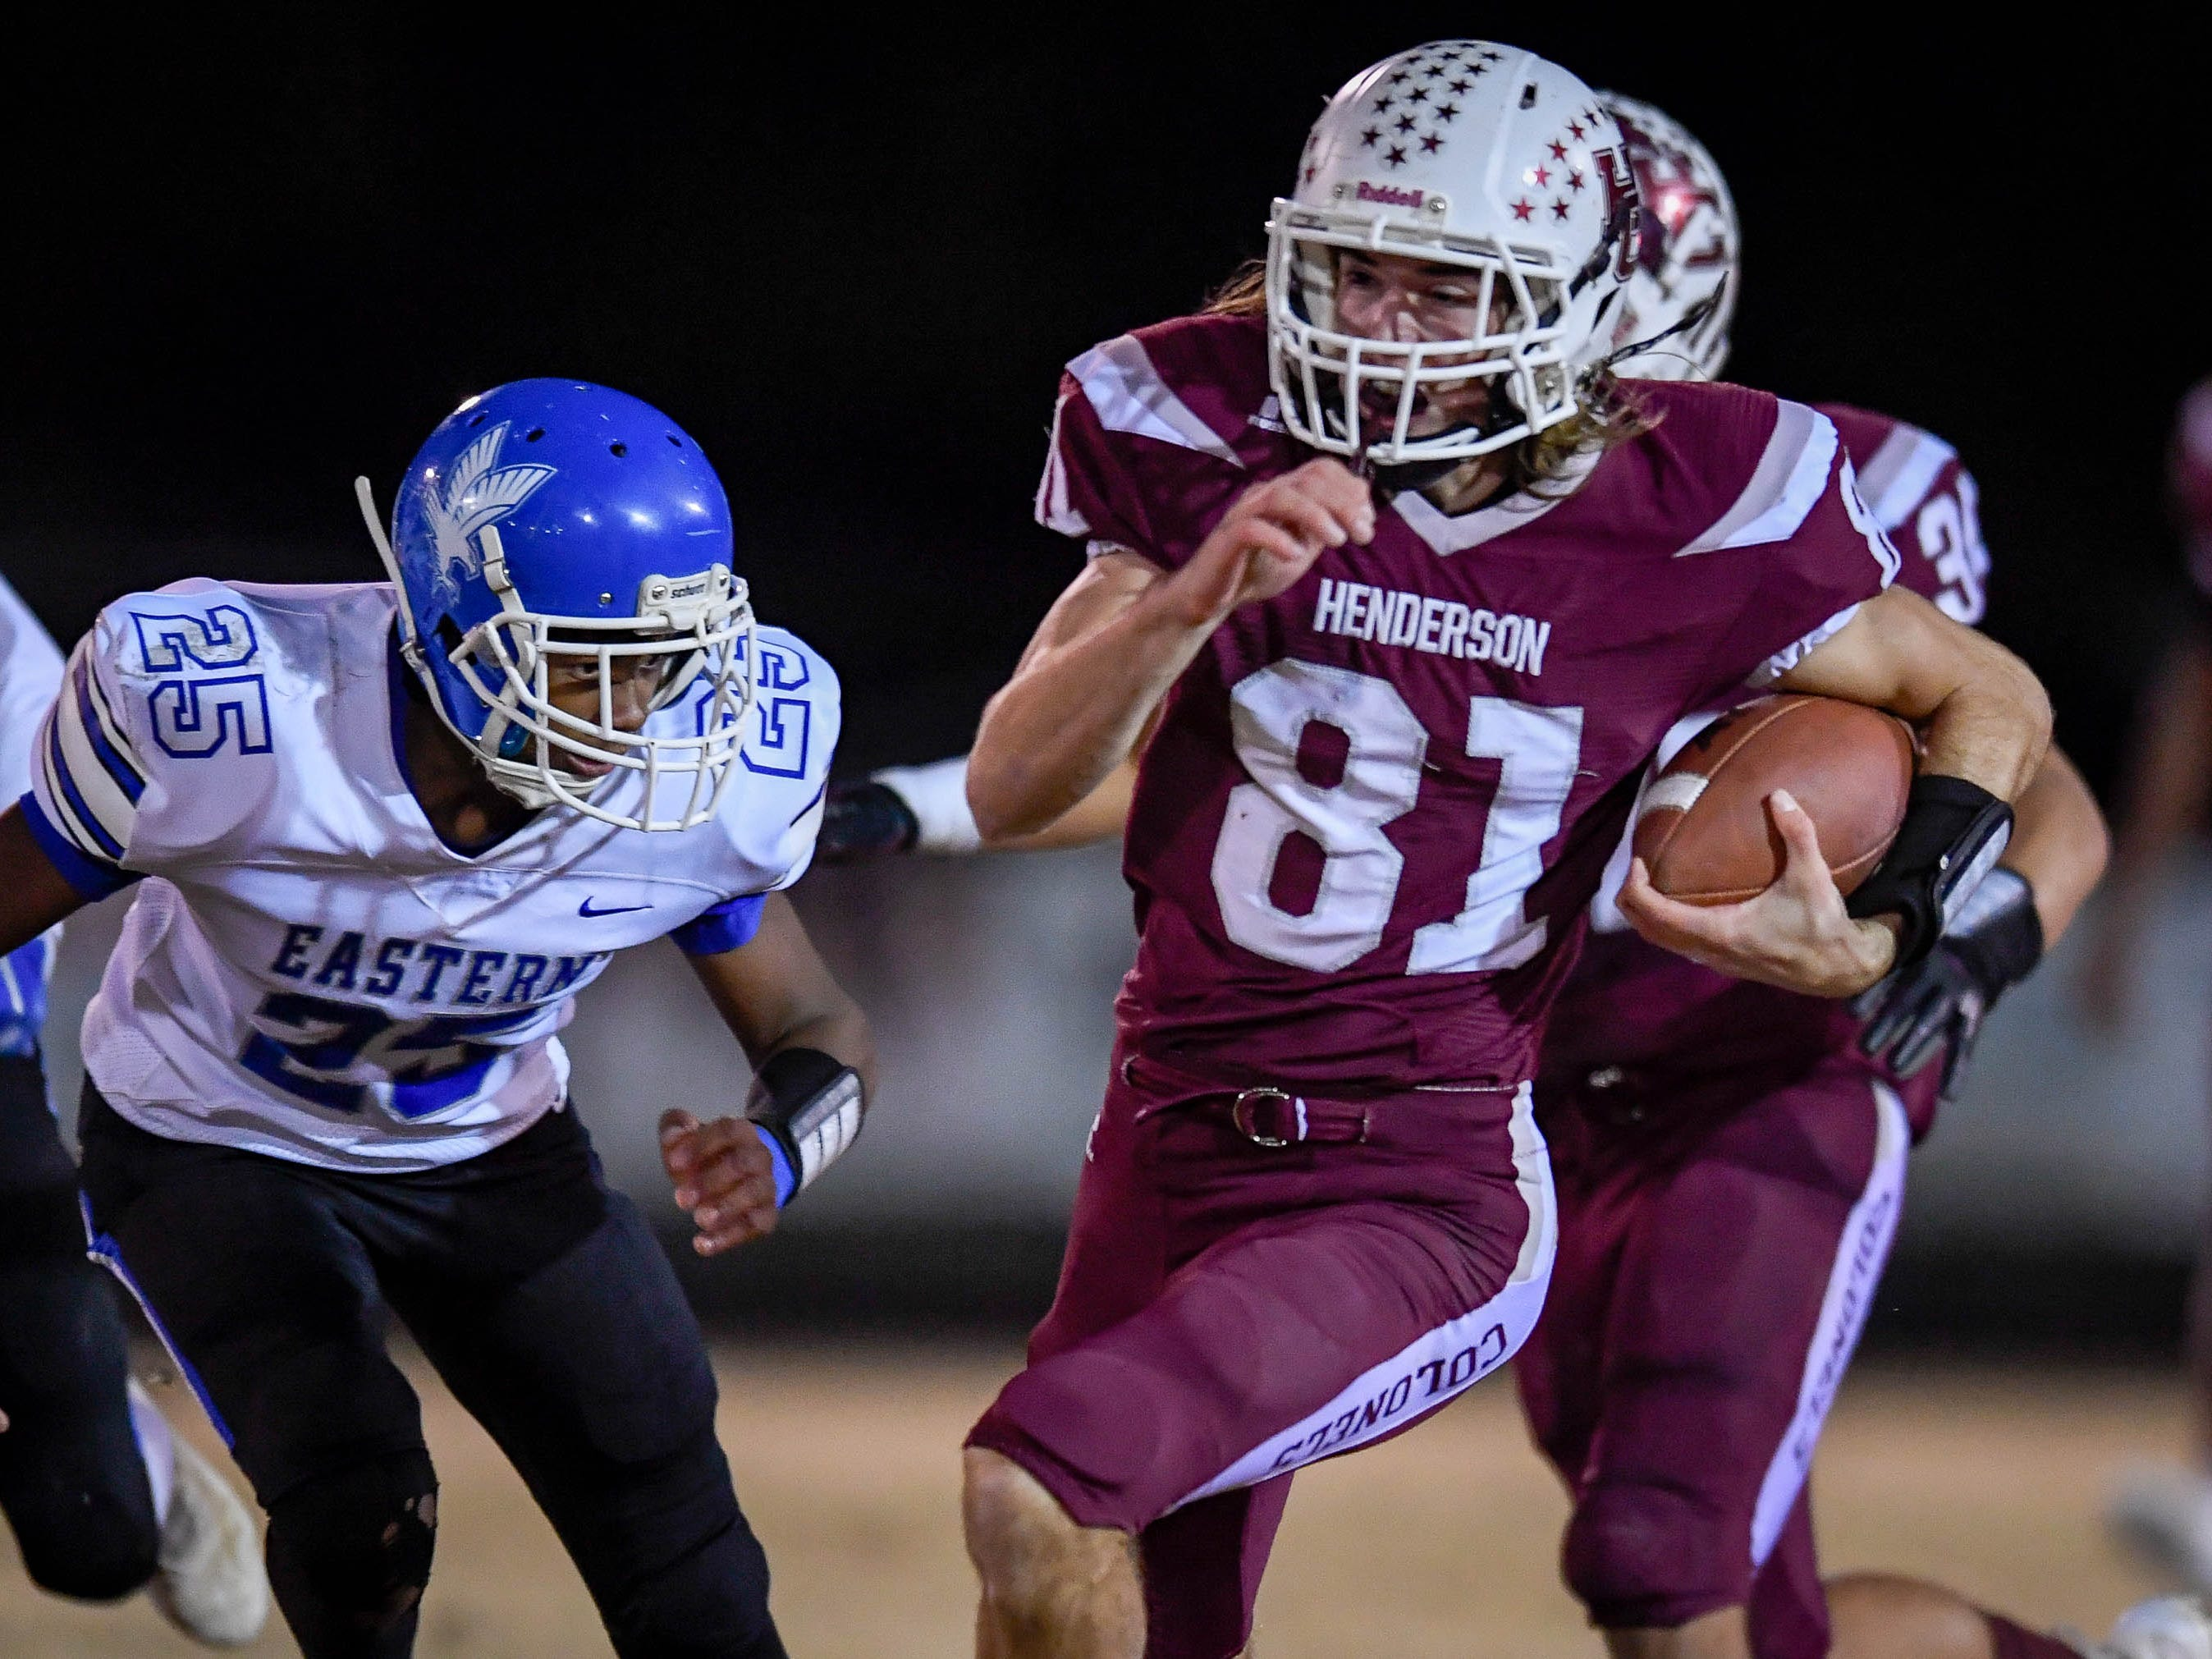 Henderson's Nick Cissell (81) on a touchdown run as the Henderson County Colonels play the Louisville Eastern Eagles in the first round of the 6-A playoffs at Colonel Field Friday, November 2, 2018.